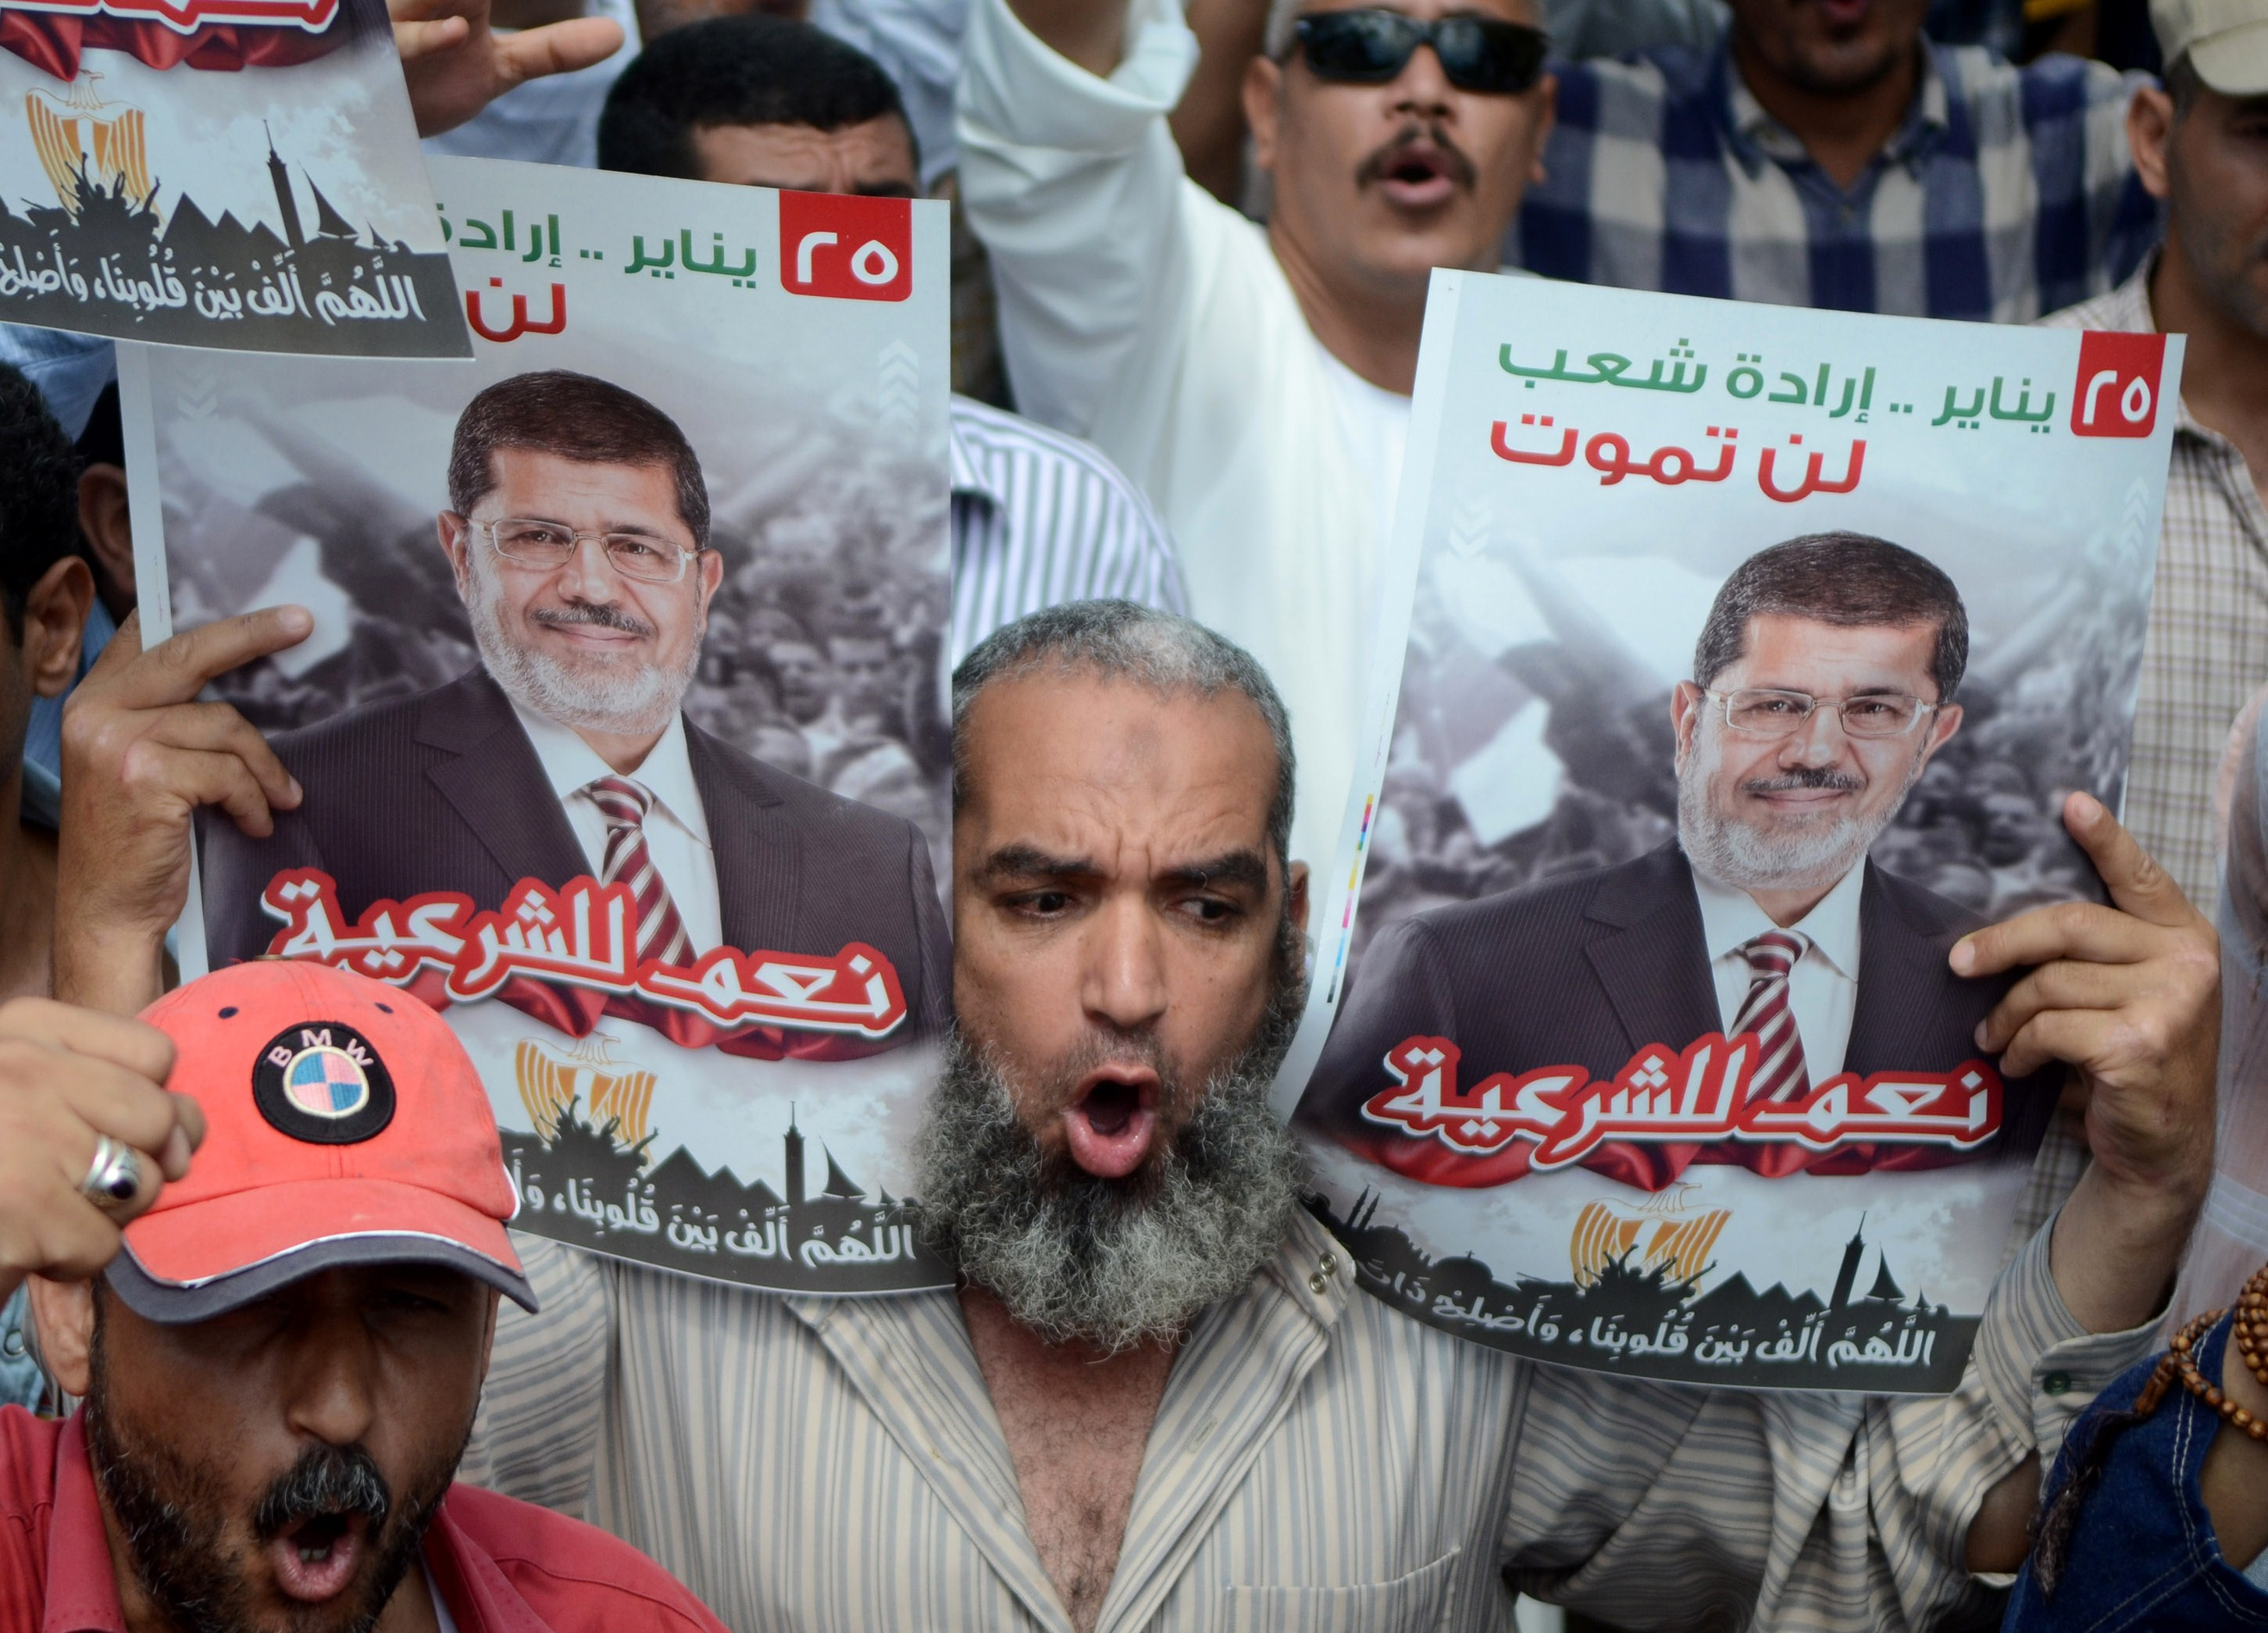 A supporter of the Muslim Brotherhood and Egypt's ousted president Mohamed Morsi (portrait) holds pictures of the former Islamist leader and shout slogans during a demonstration in the coastal city of Alexandria on July 19, 2013. (AFP Photo)